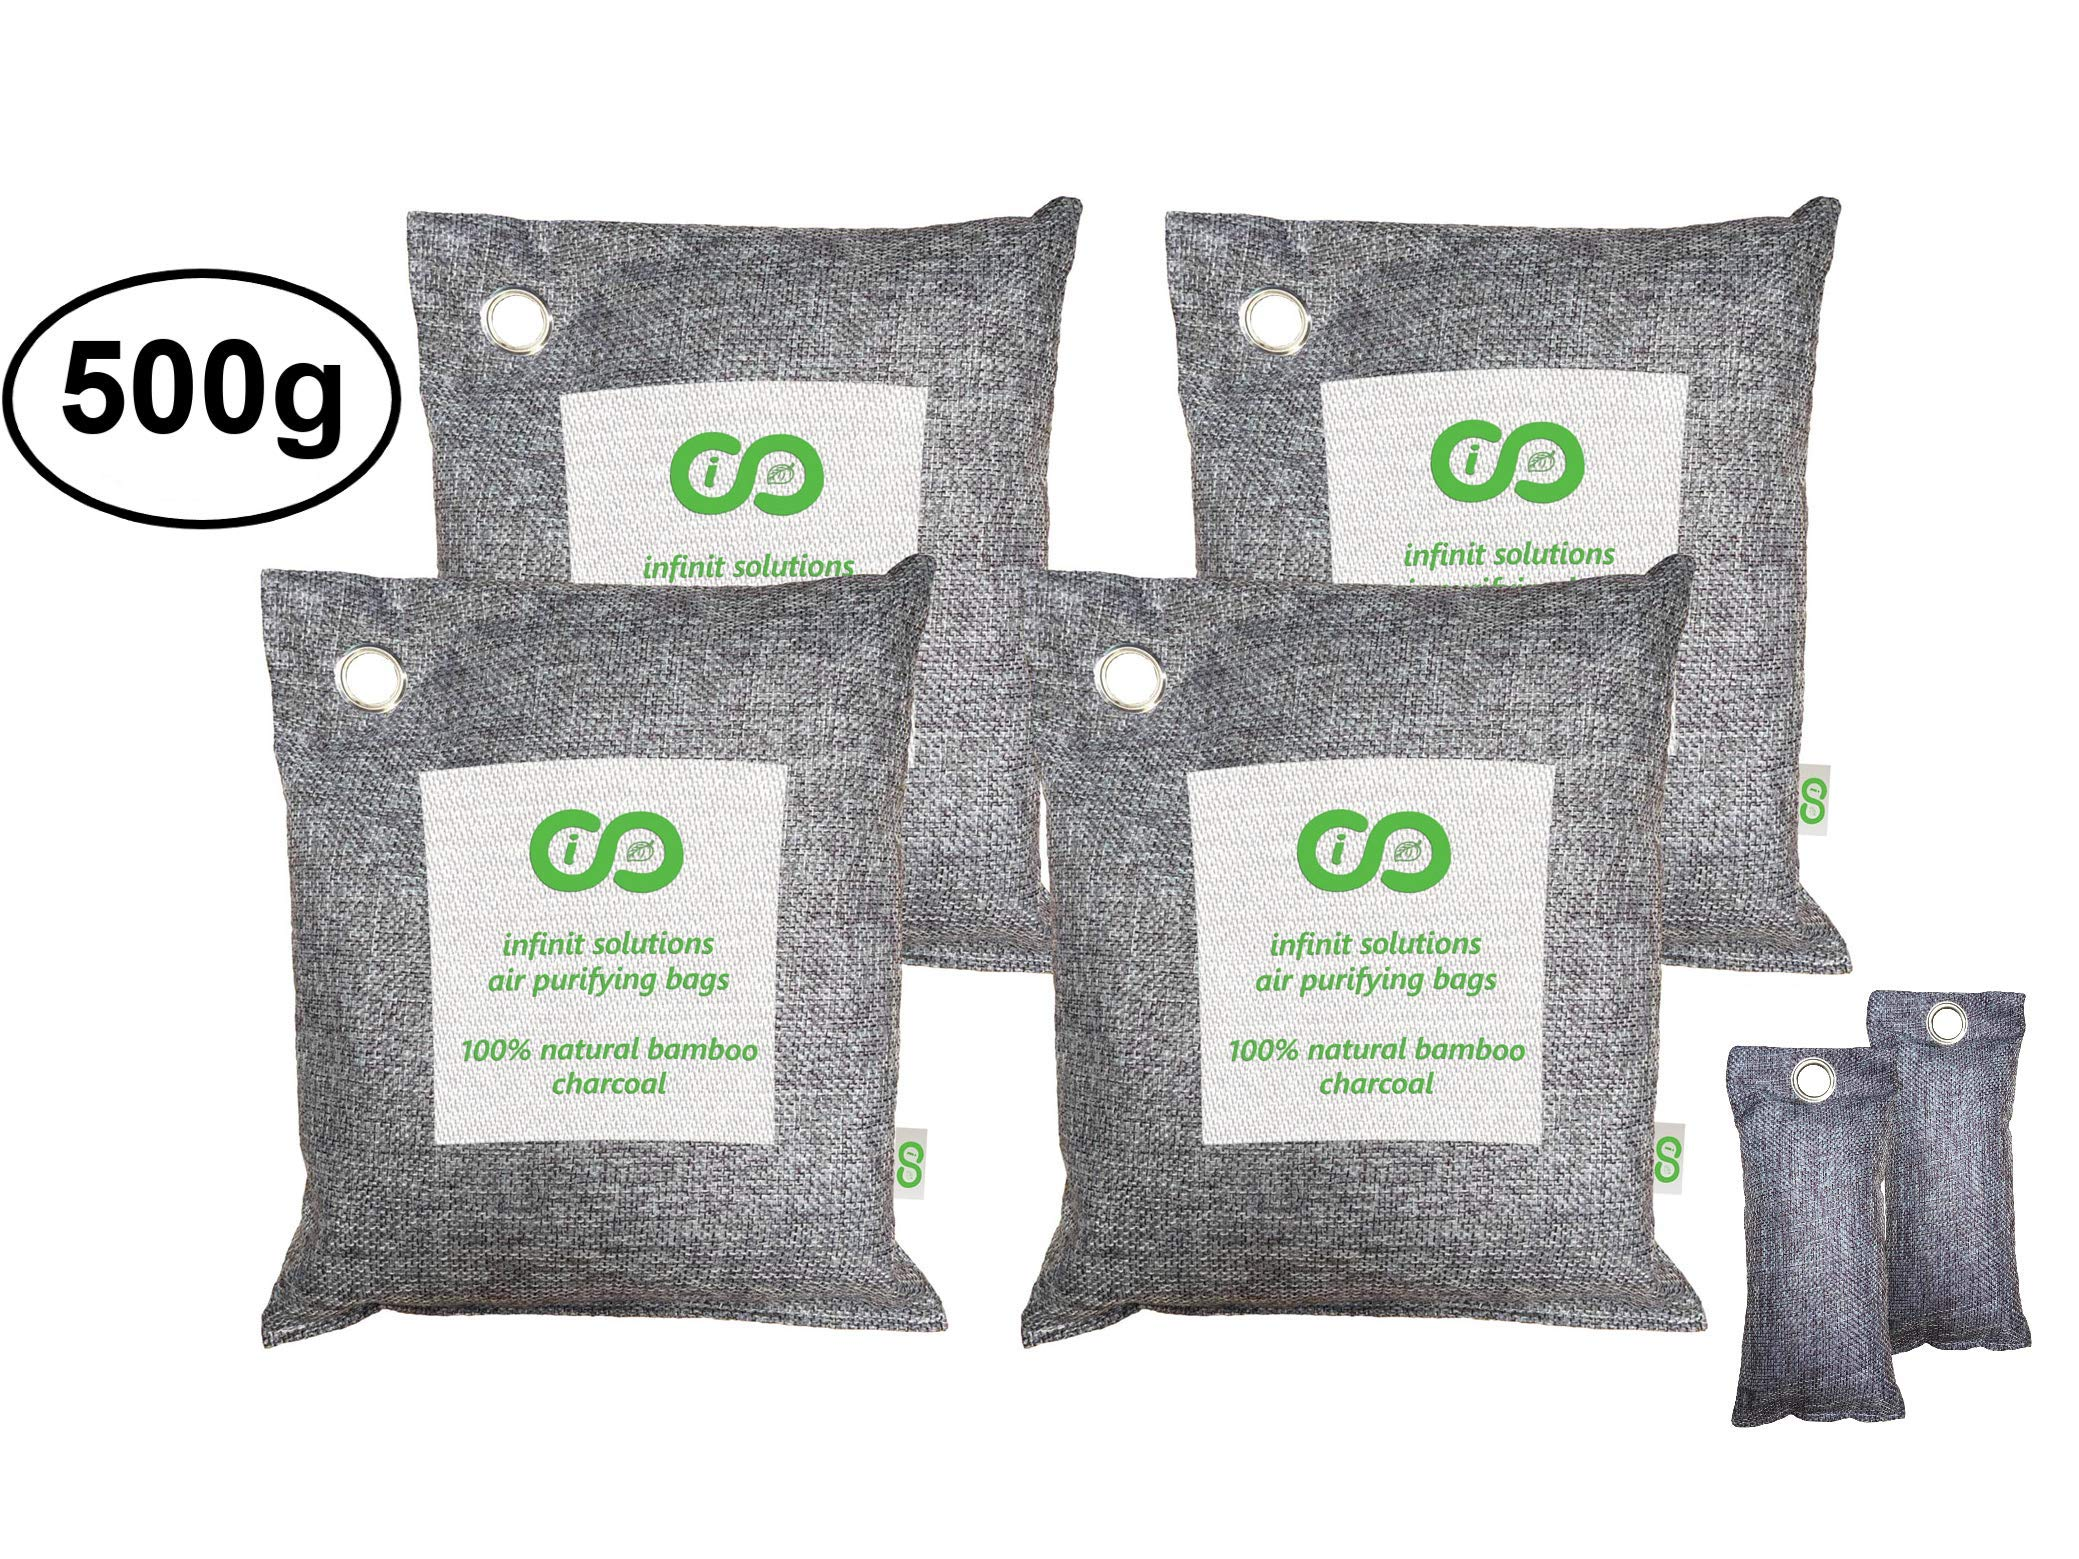 Air Purifying Bags (6 Pack), Car & Pet Odor Eliminator. Natural Activated Bamboo Charcoal Deodorizer, Odor Absorber Remover, Air Freshener. 4 x 500g Bags and 2 x 100g Shoe Deodorizers